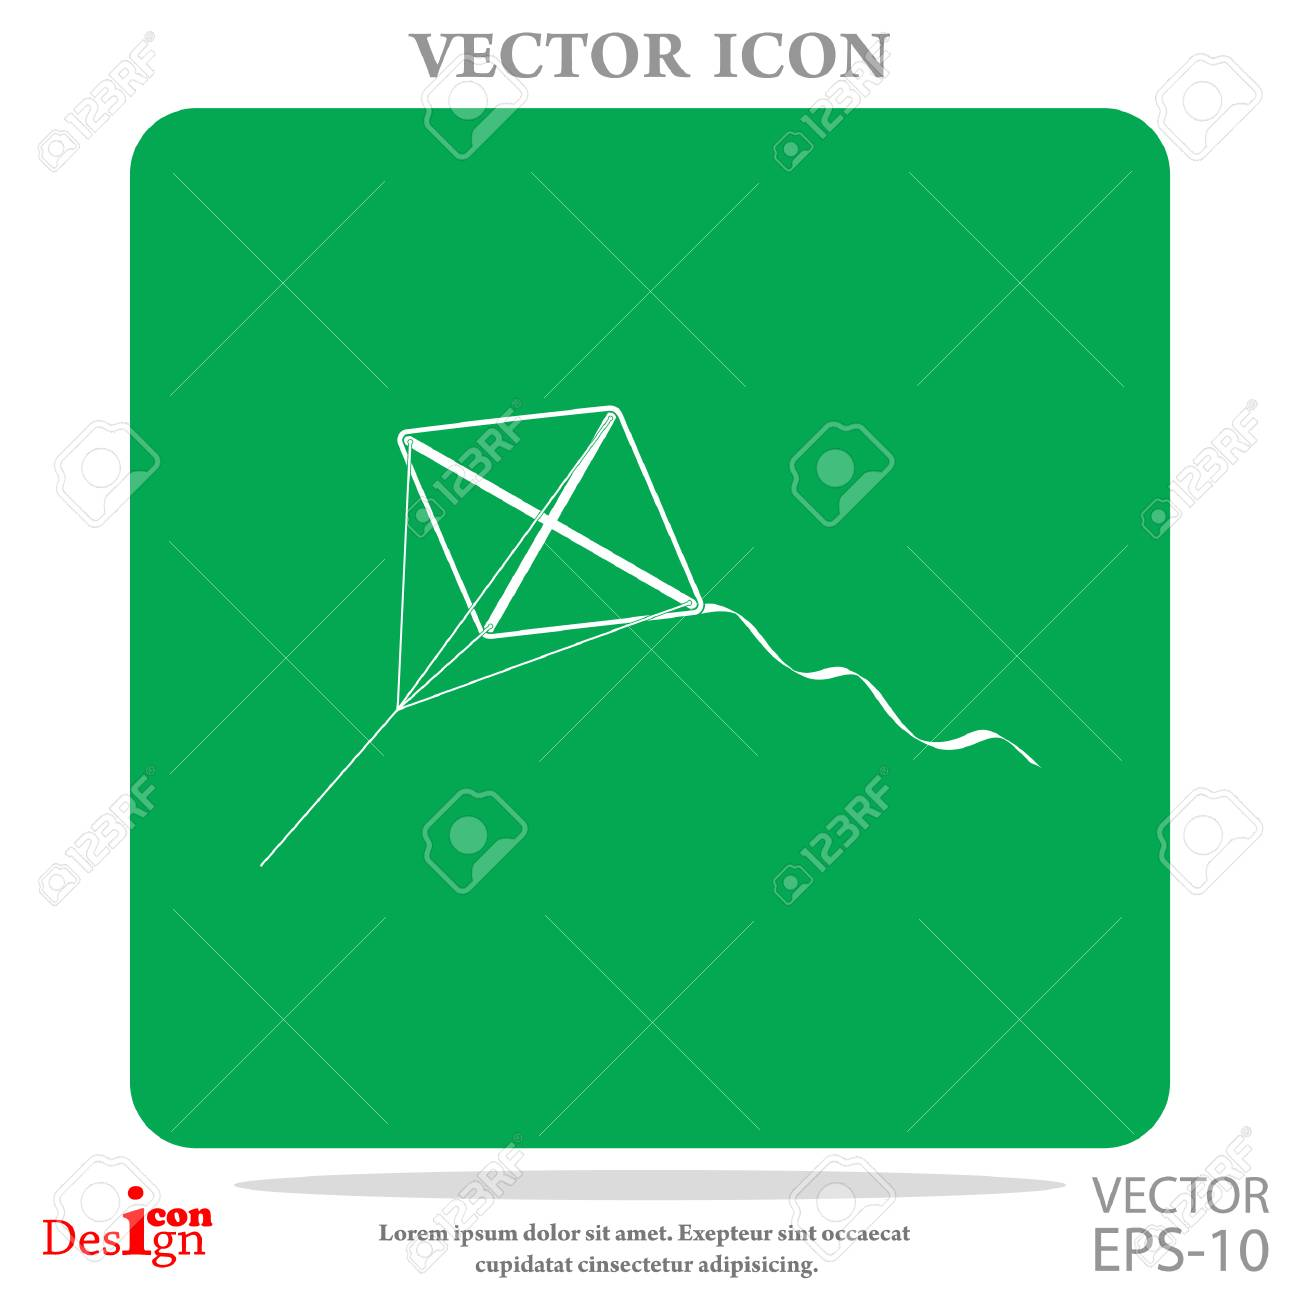 Kite Vector Icon Royalty Free Cliparts Vectors And Stock Diagram 62388041